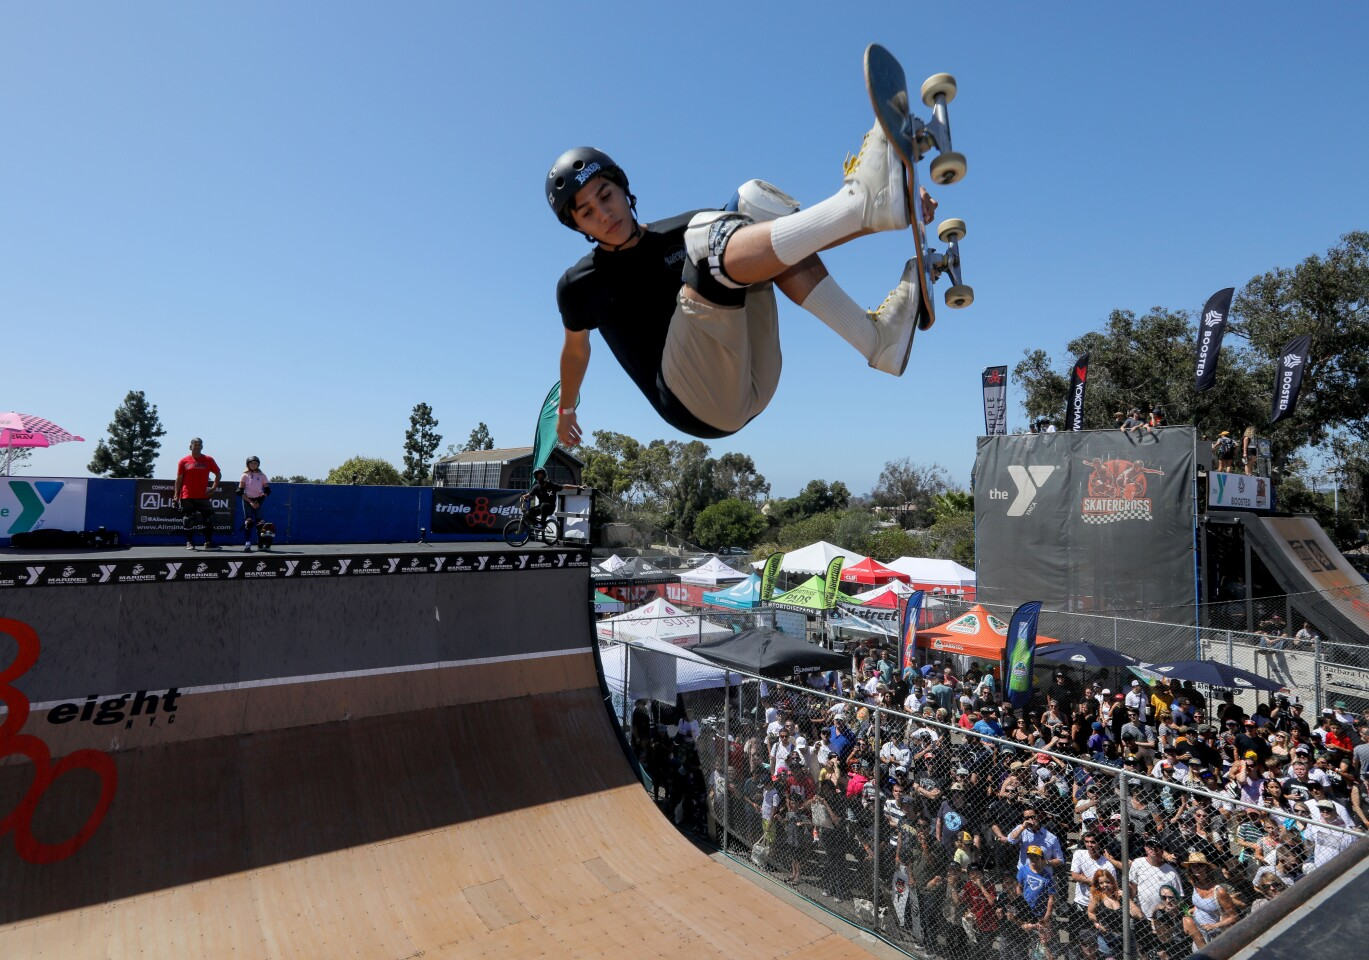 Oceanside's Austin Poynter gets serious air at the Triple Eight Clash at Clairemont skateboard event during the Pro Vert Ramp Jam demonstration.